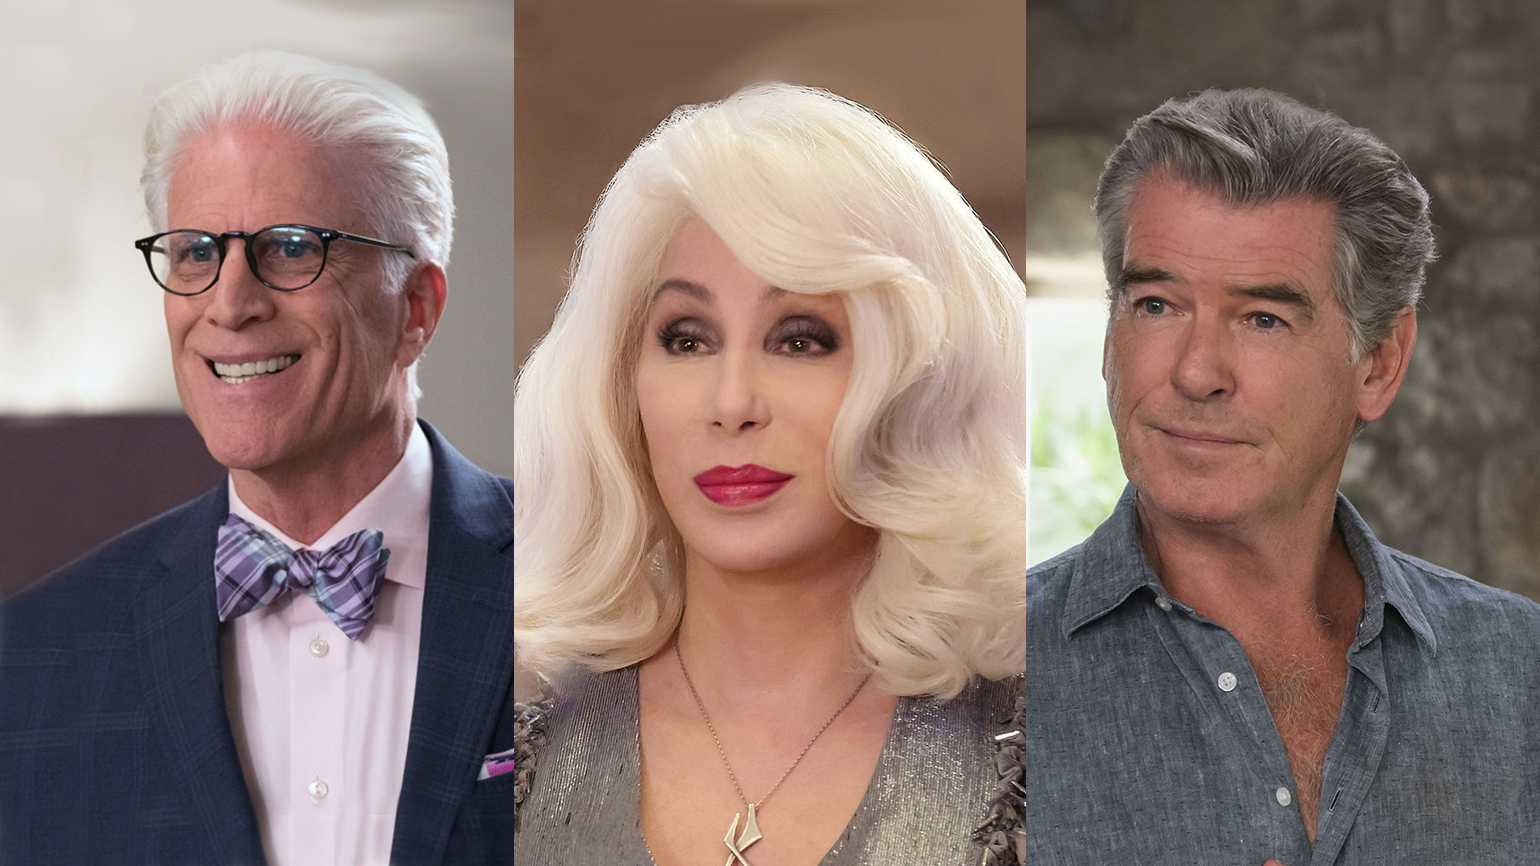 Ted Danson, Cher and Pierce Brosnan